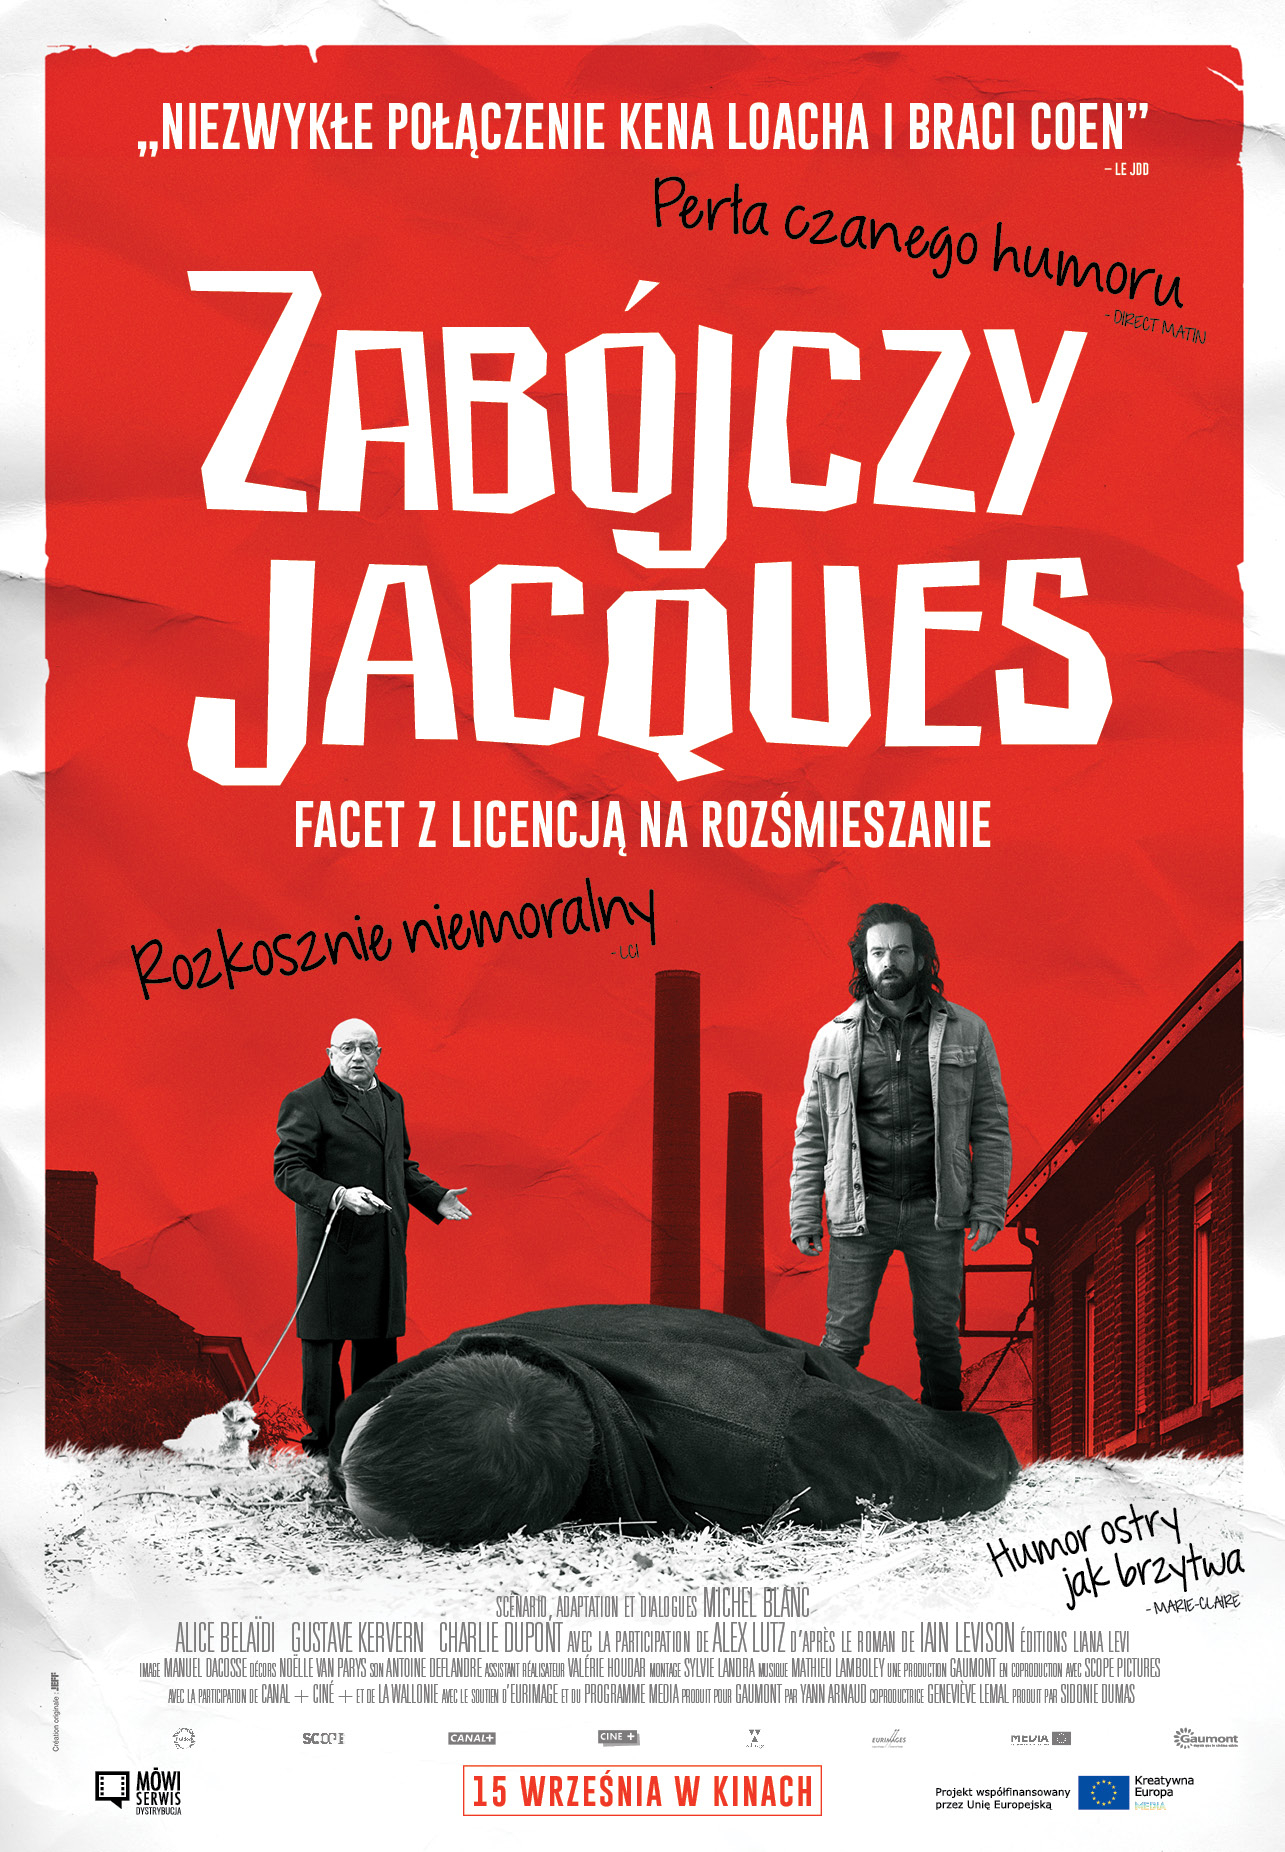 Zabojczy_Jacques_plakat_media